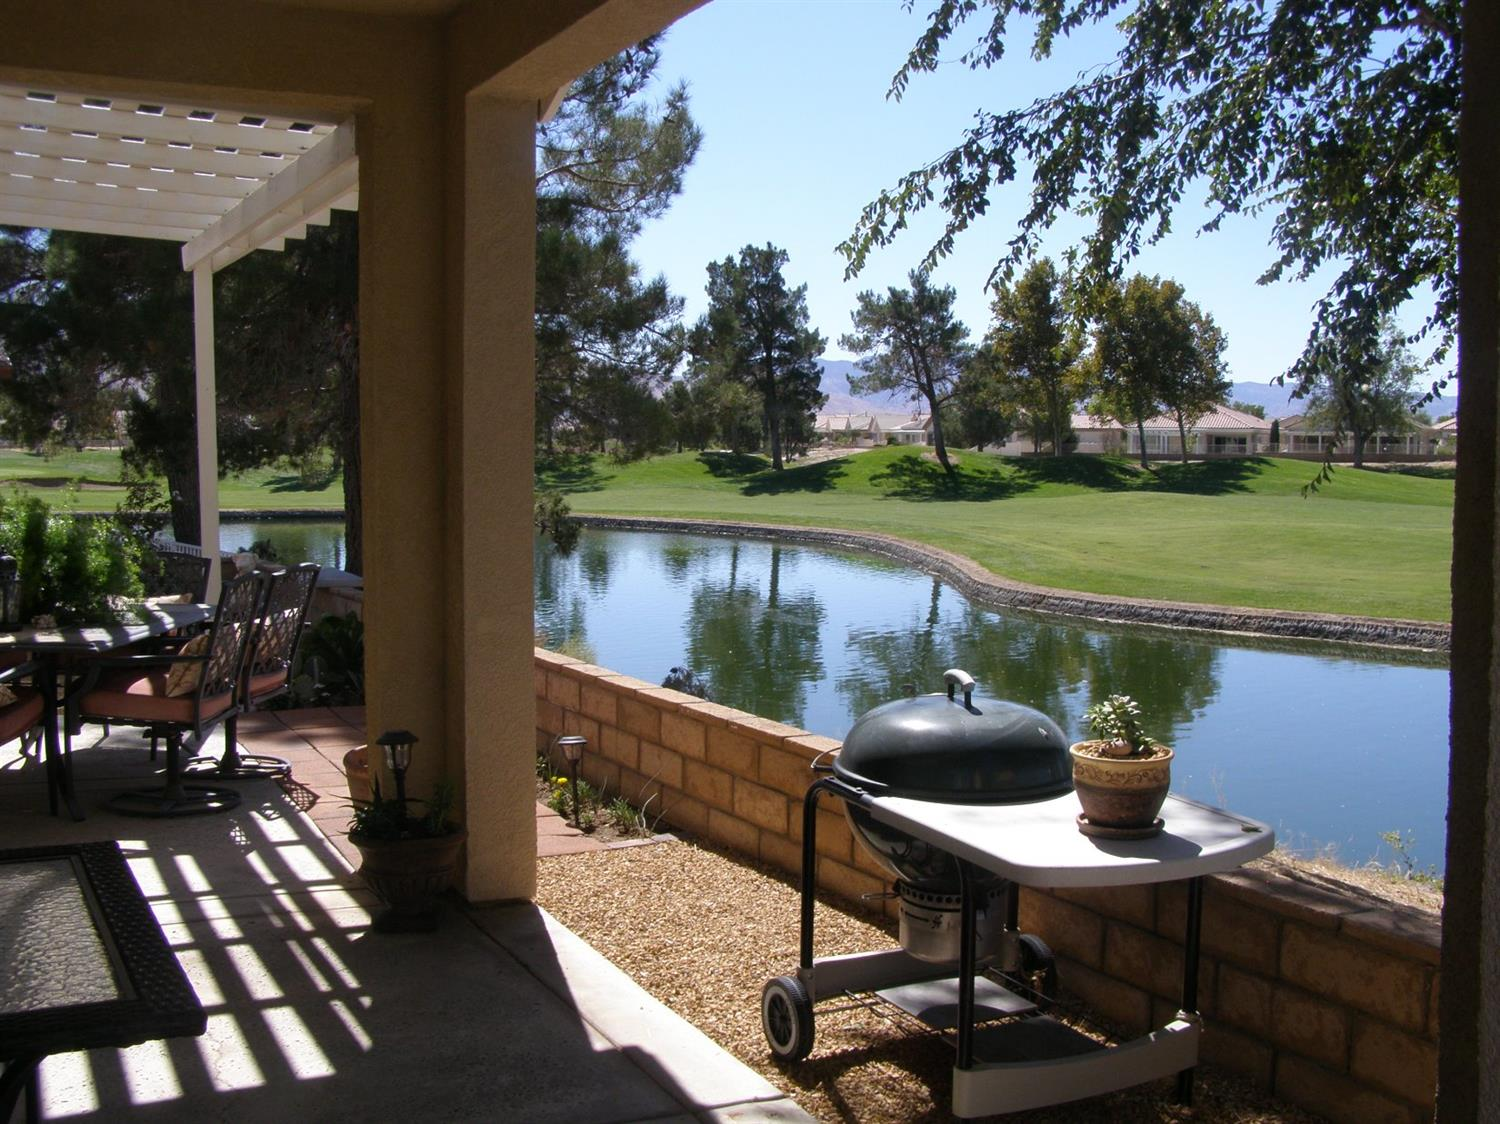 All homes for sale 55places 11354 sawgrass bend apple valley ca 92308 malvernweather Choice Image